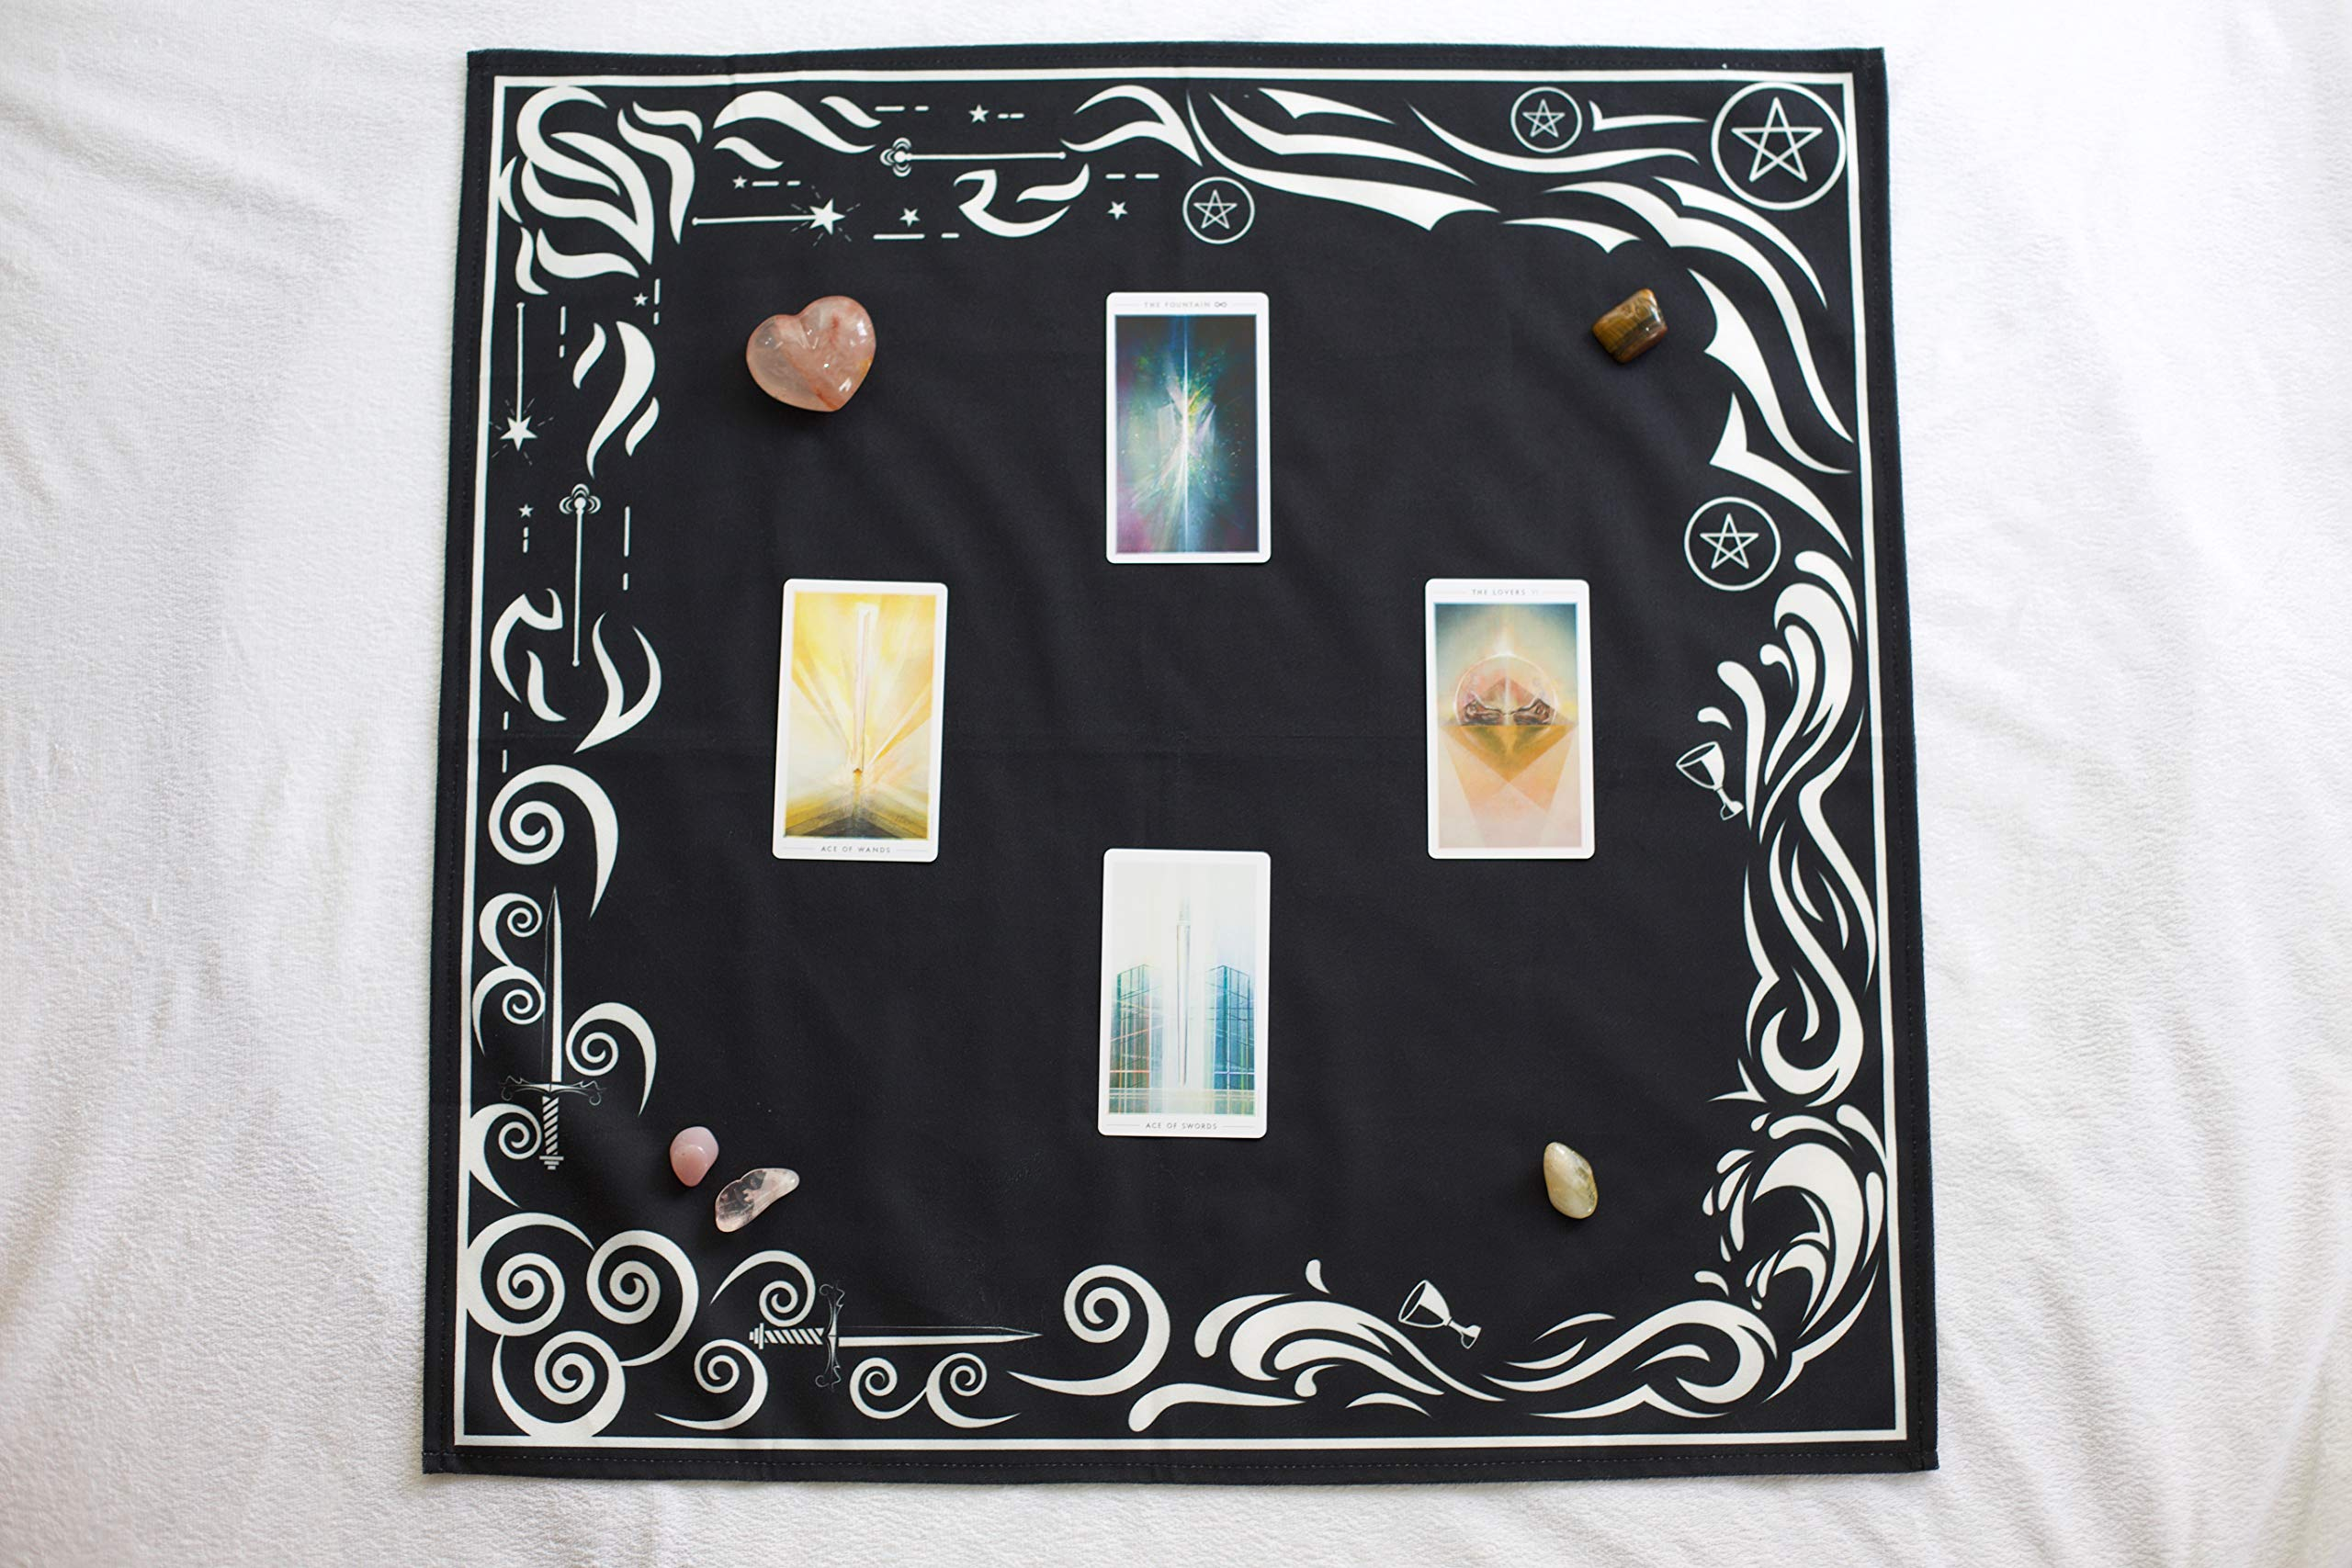 Tarot Cloth and Moon Tapestry Bundle by Hidden Crystal Tarot (Image #4)